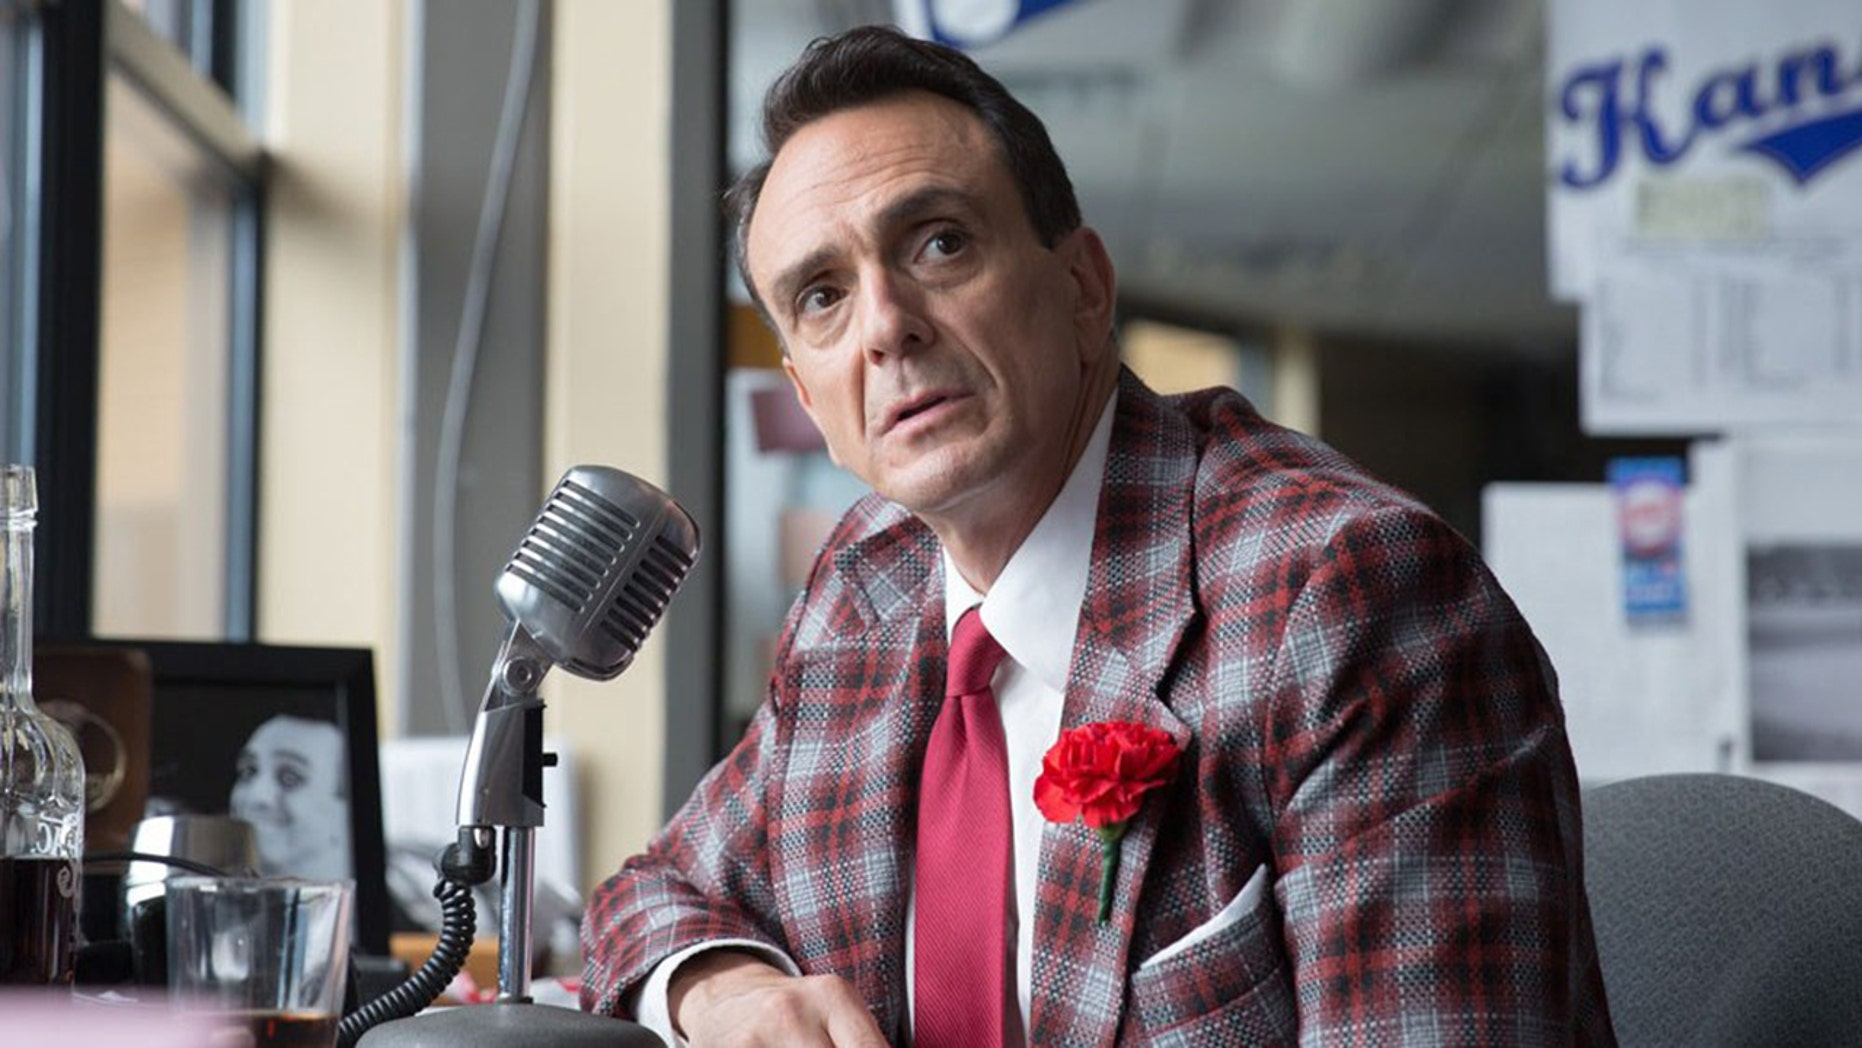 """Hank Azaria, who engendered controversy over his character Apu in """"The Simpsons,"""" is playing Jim Brockmire in the IFC show."""